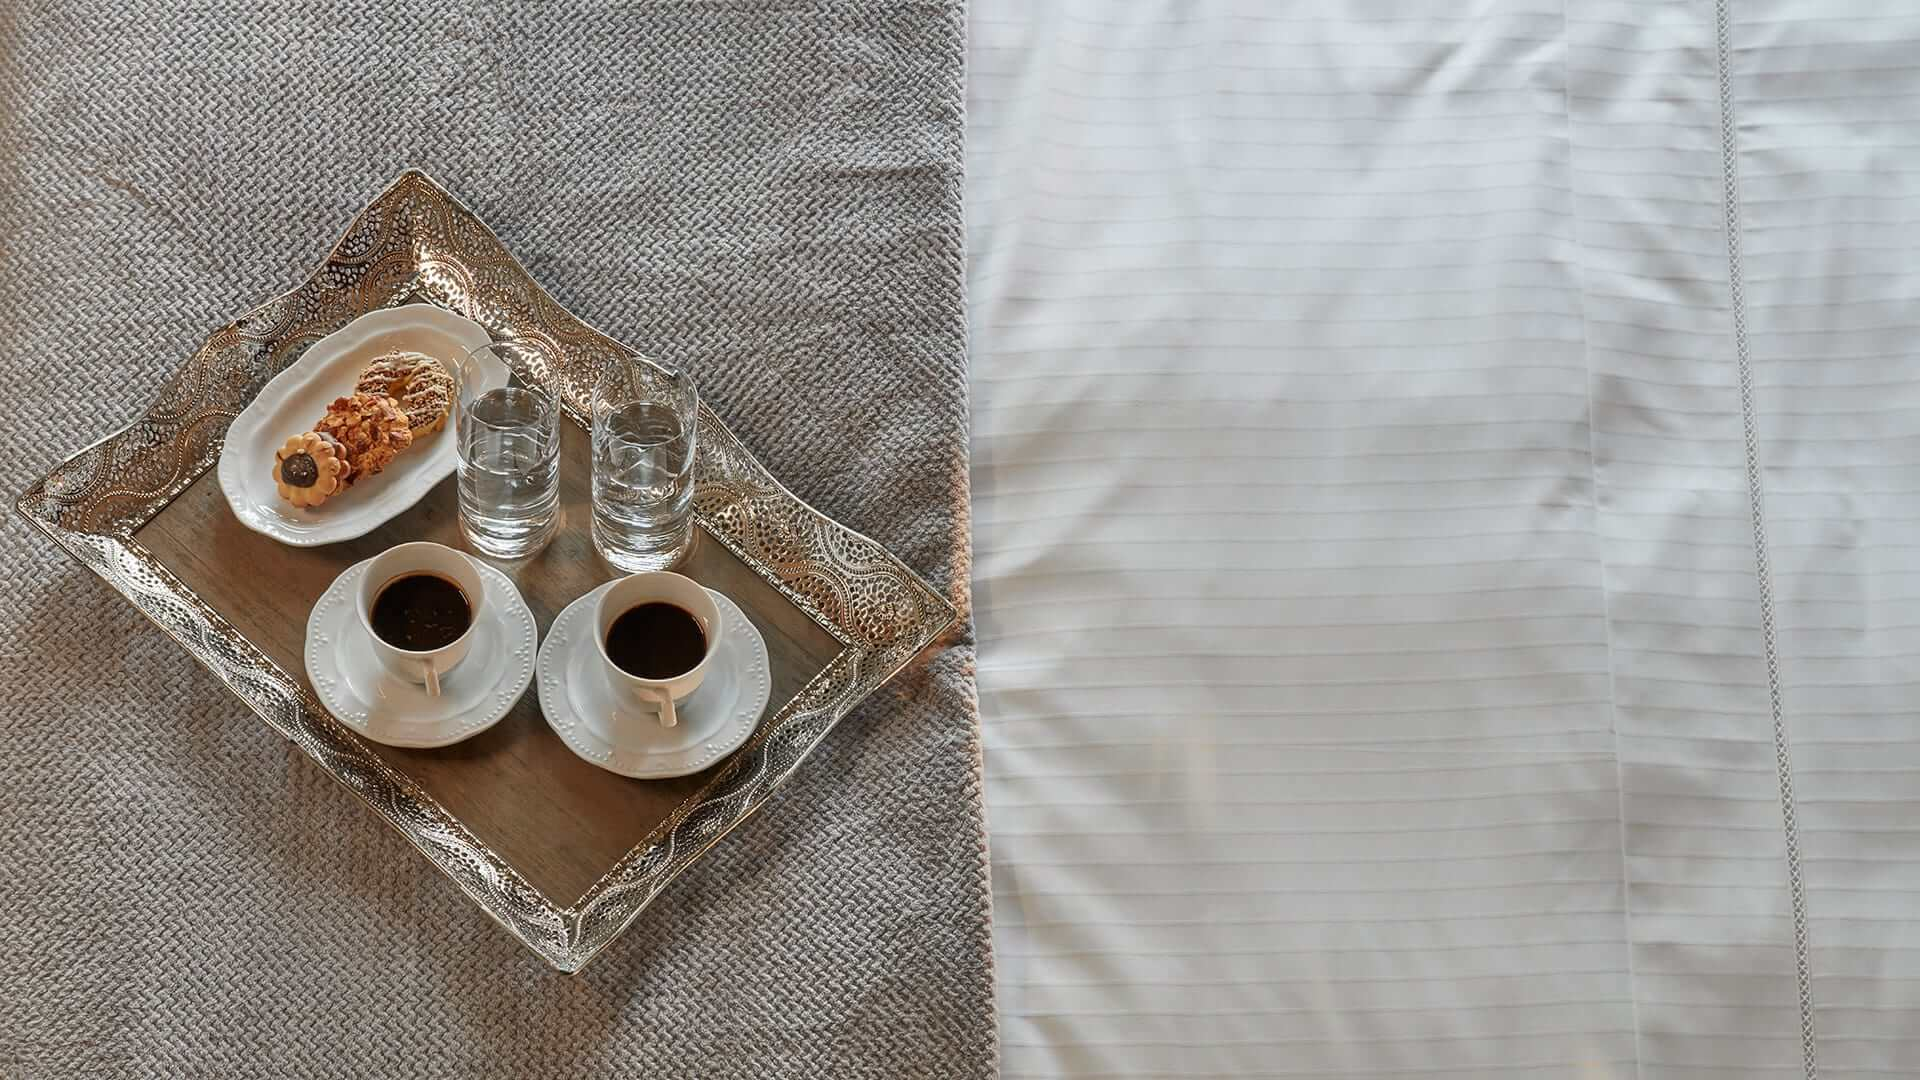 Coffee tray on luxury bed sheets in one of the Domus Renier Boutique Hotel rooms & suites in Chania